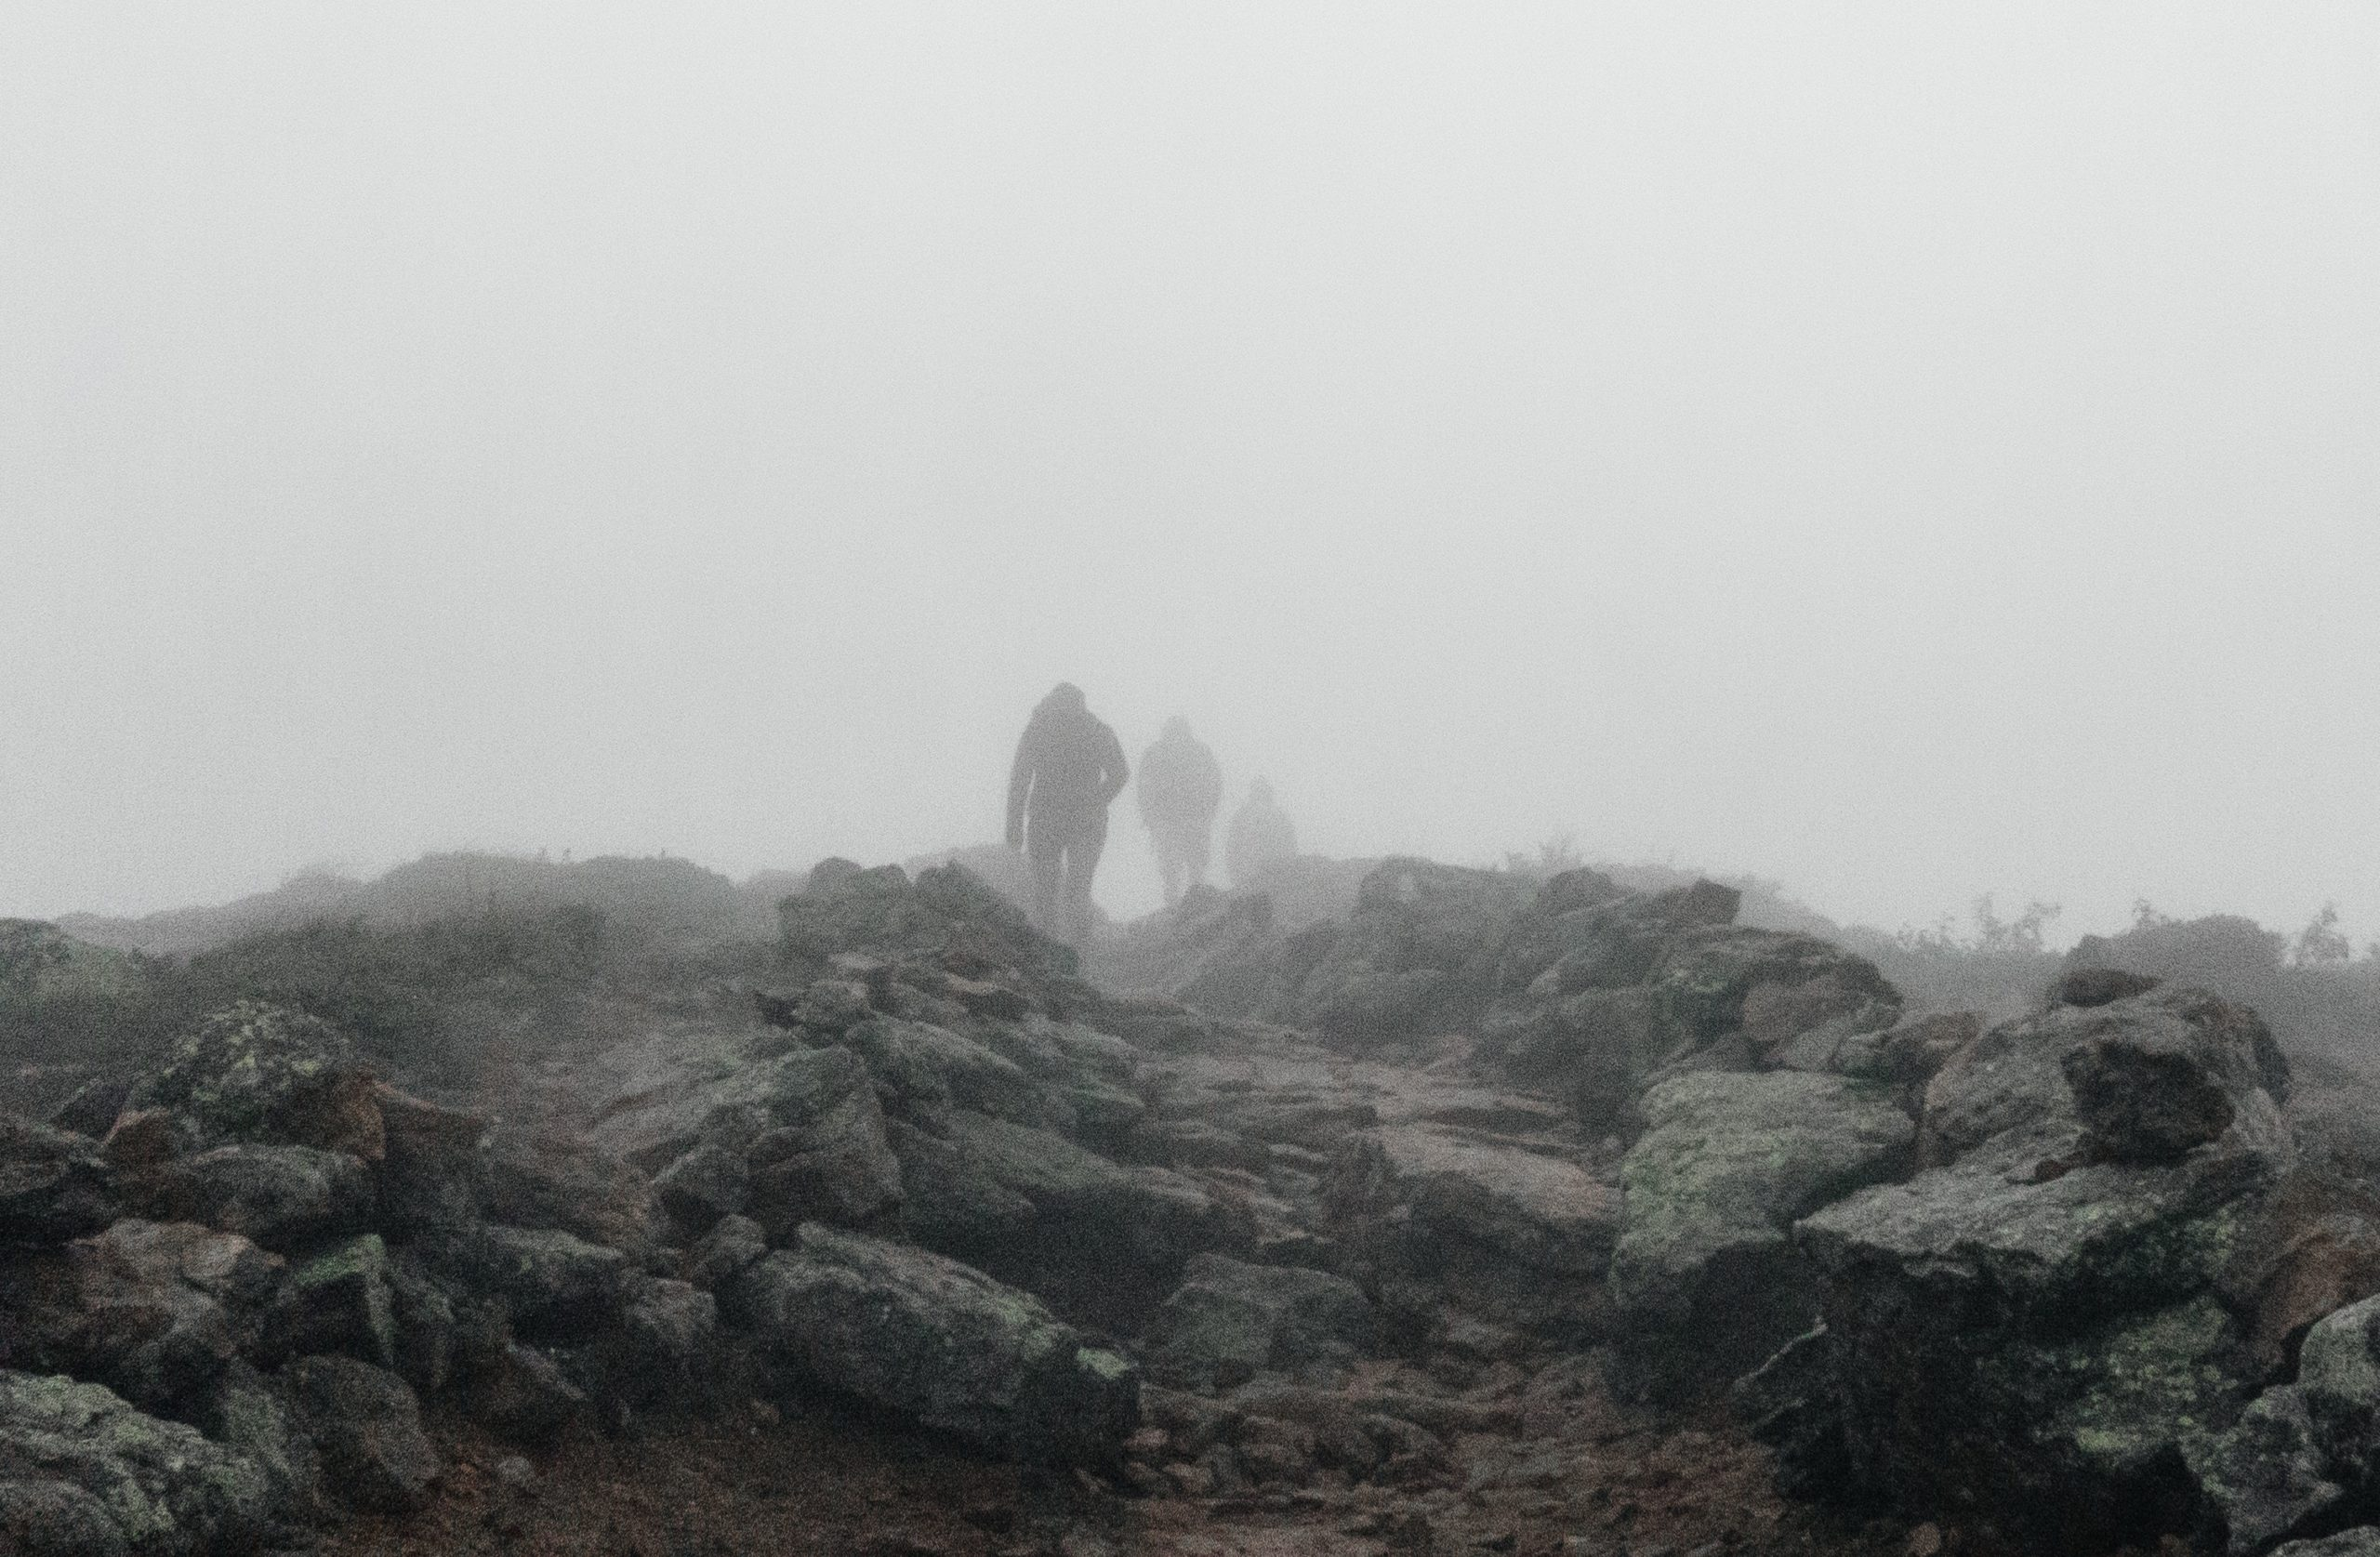 Several figured in the distance walk along path that is almost completely covered by large rocks. The sky is so thickly foggy that the figure who is the farthest away is almost obscured entirely. They look like they have a long journey ahead of them.